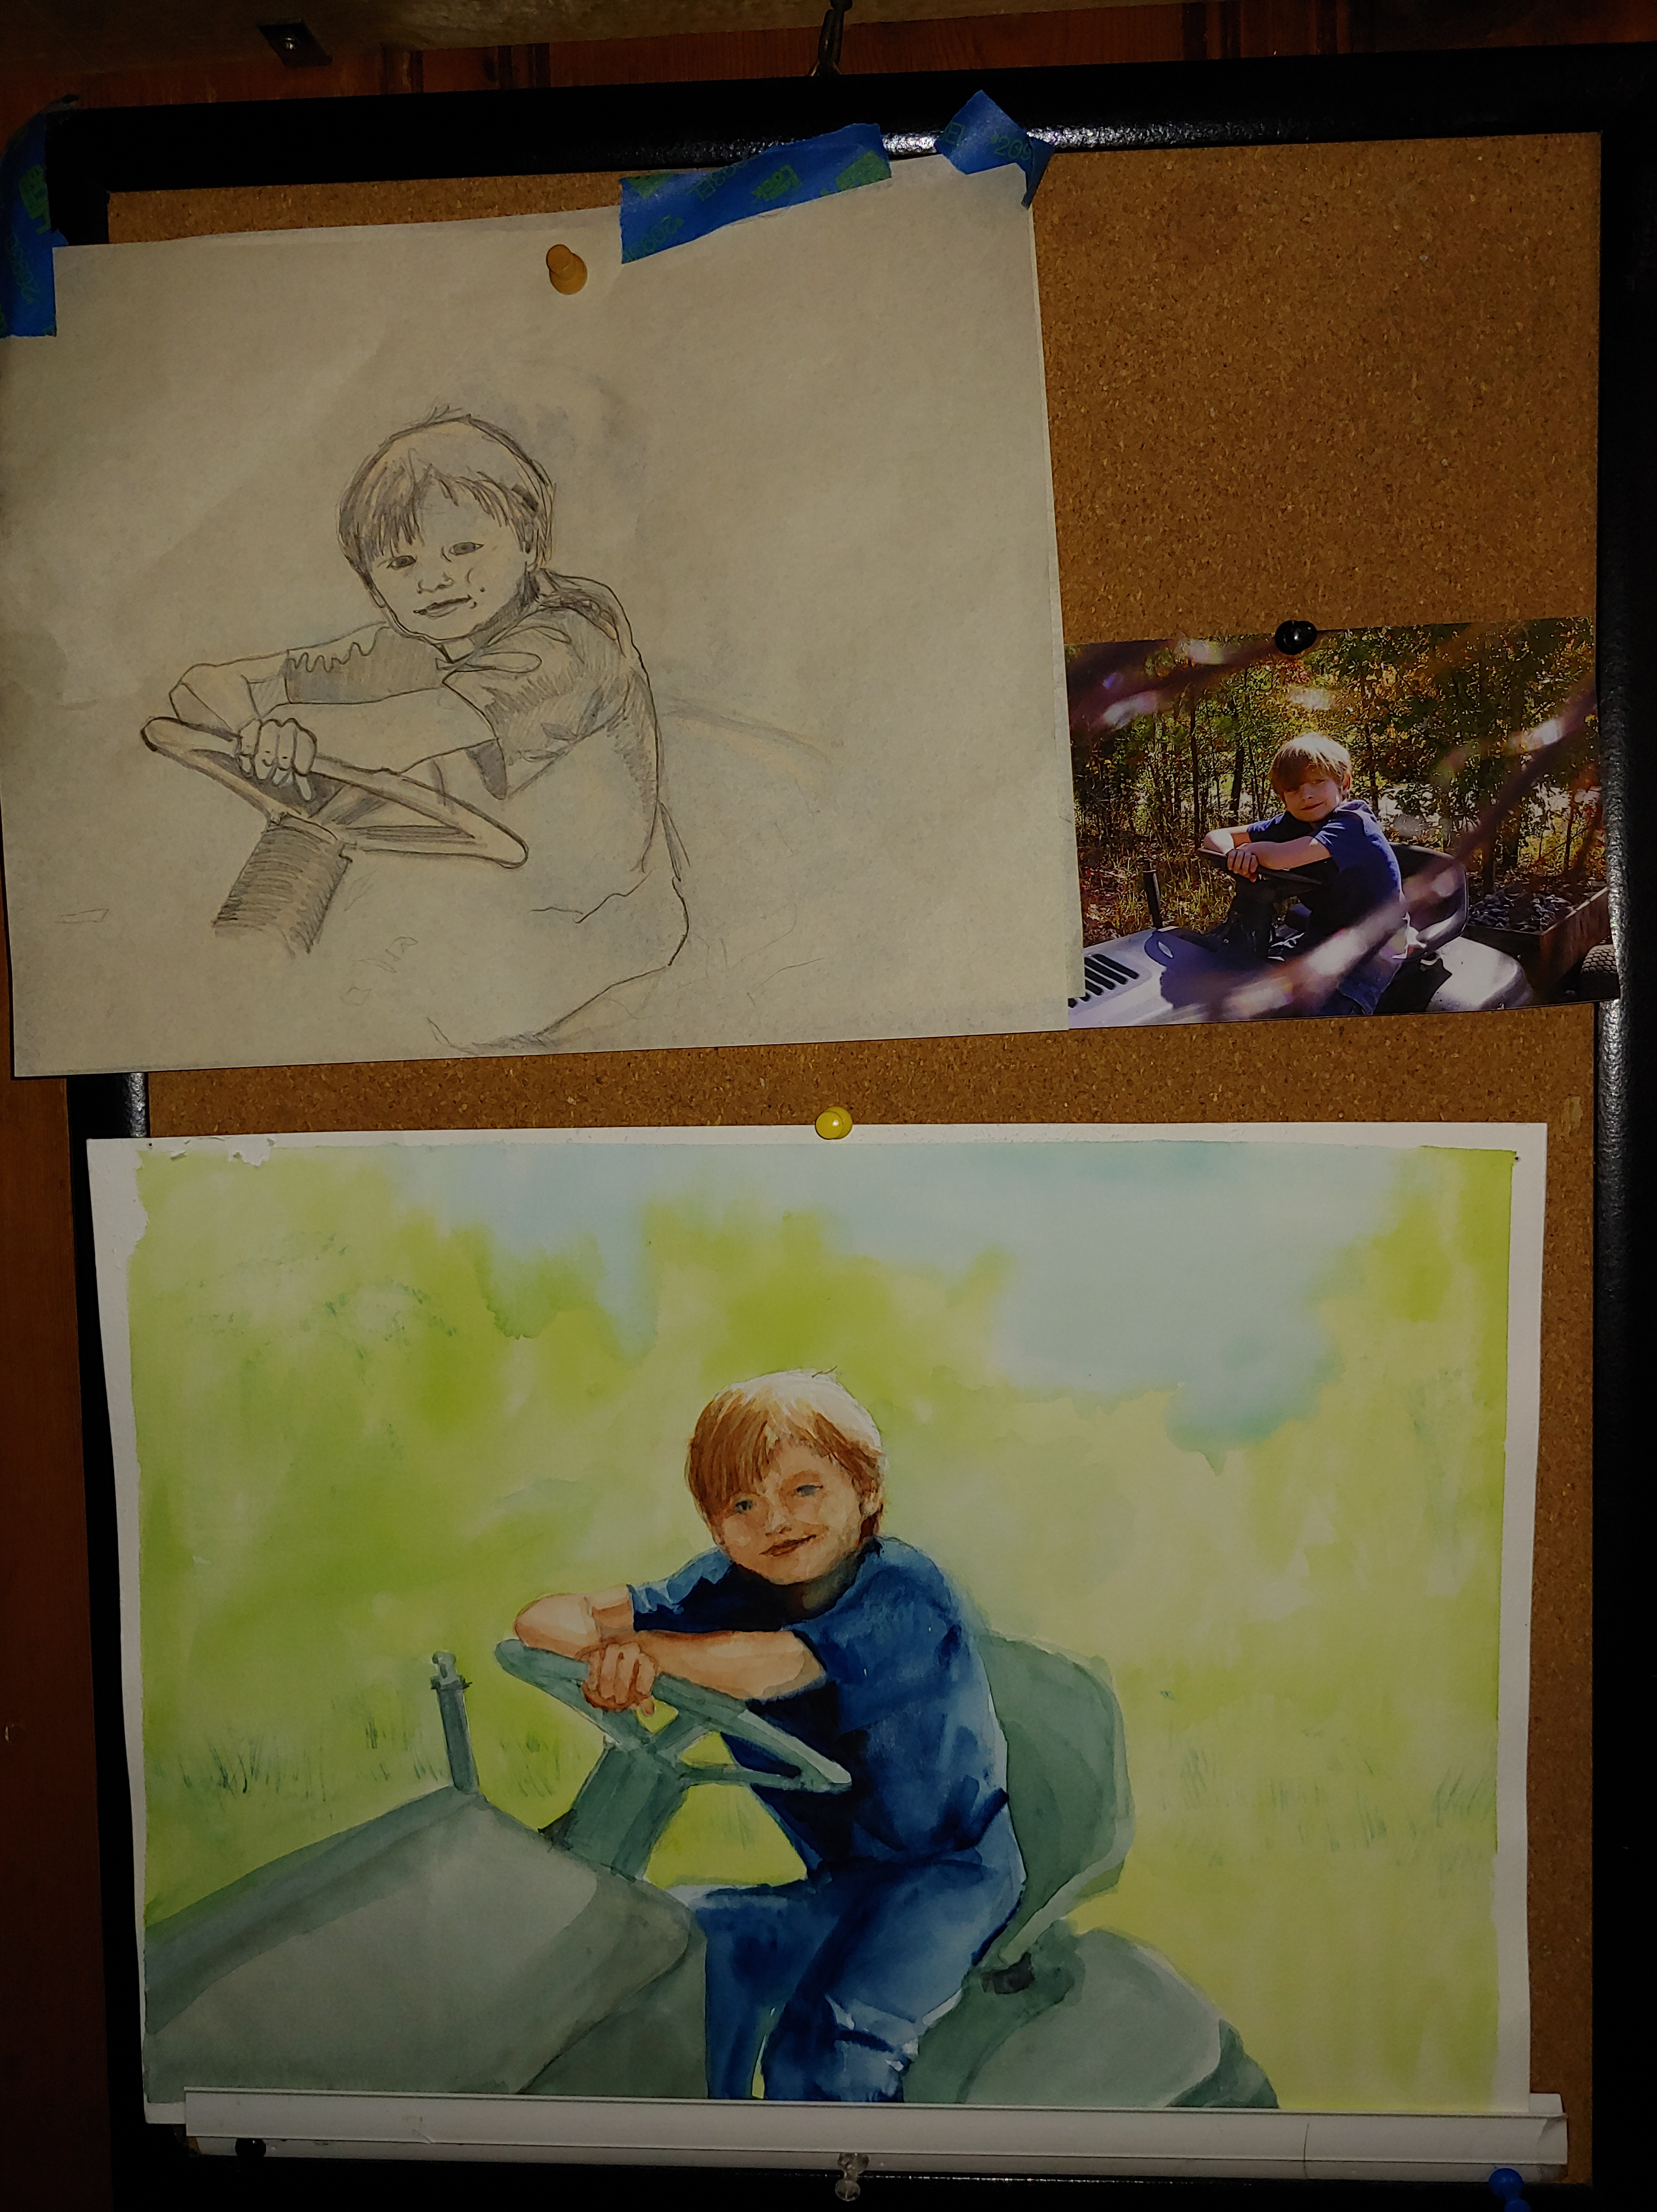 Watercolor painting: A boy on his grandpa's lawn tractor.   The portrait process from photo, sketches, memories, and the painting.